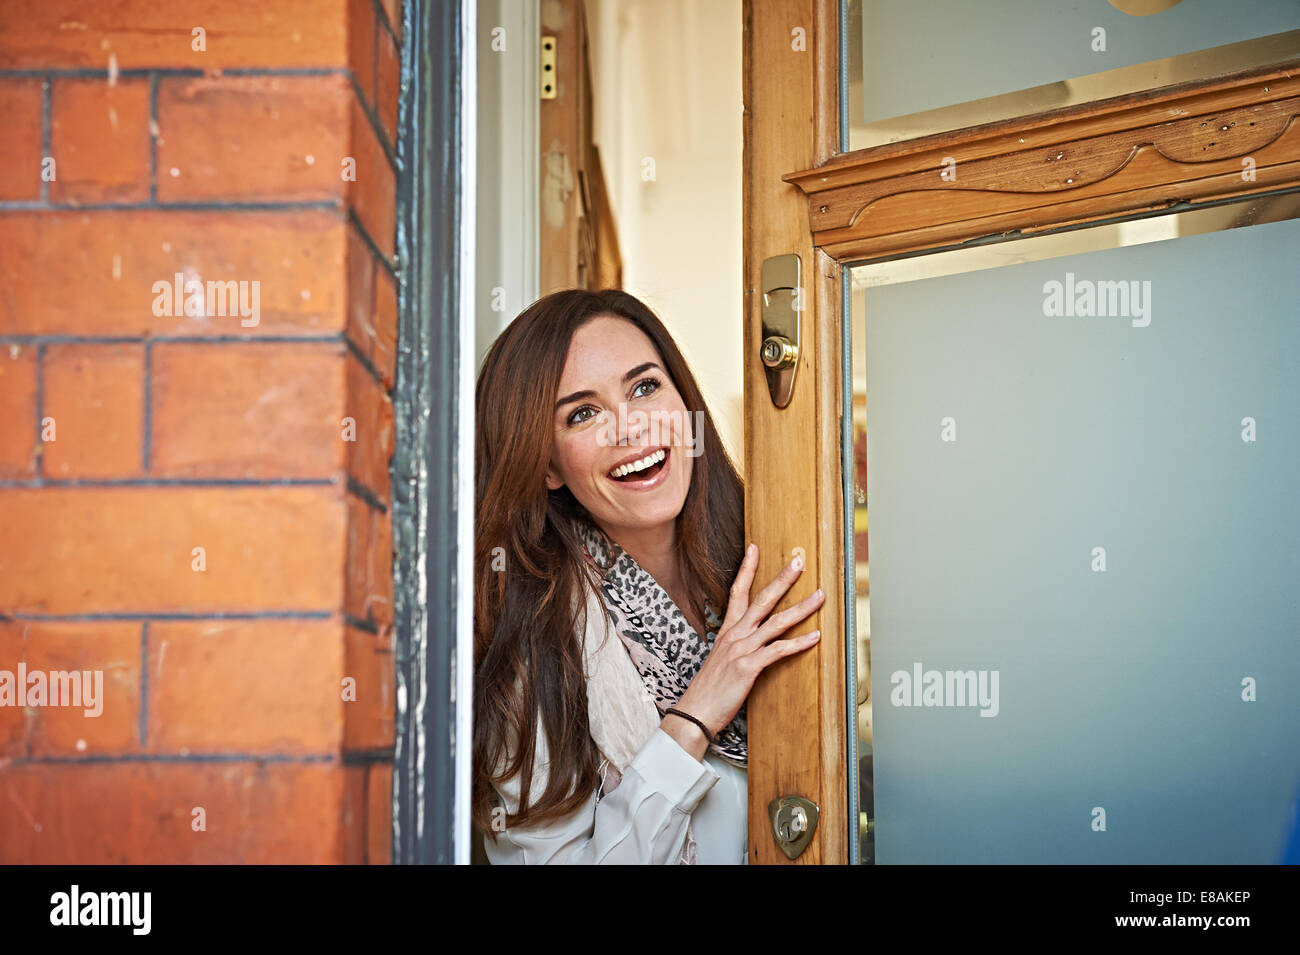 Woman opening front door Stock Photo, Royalty Free Image